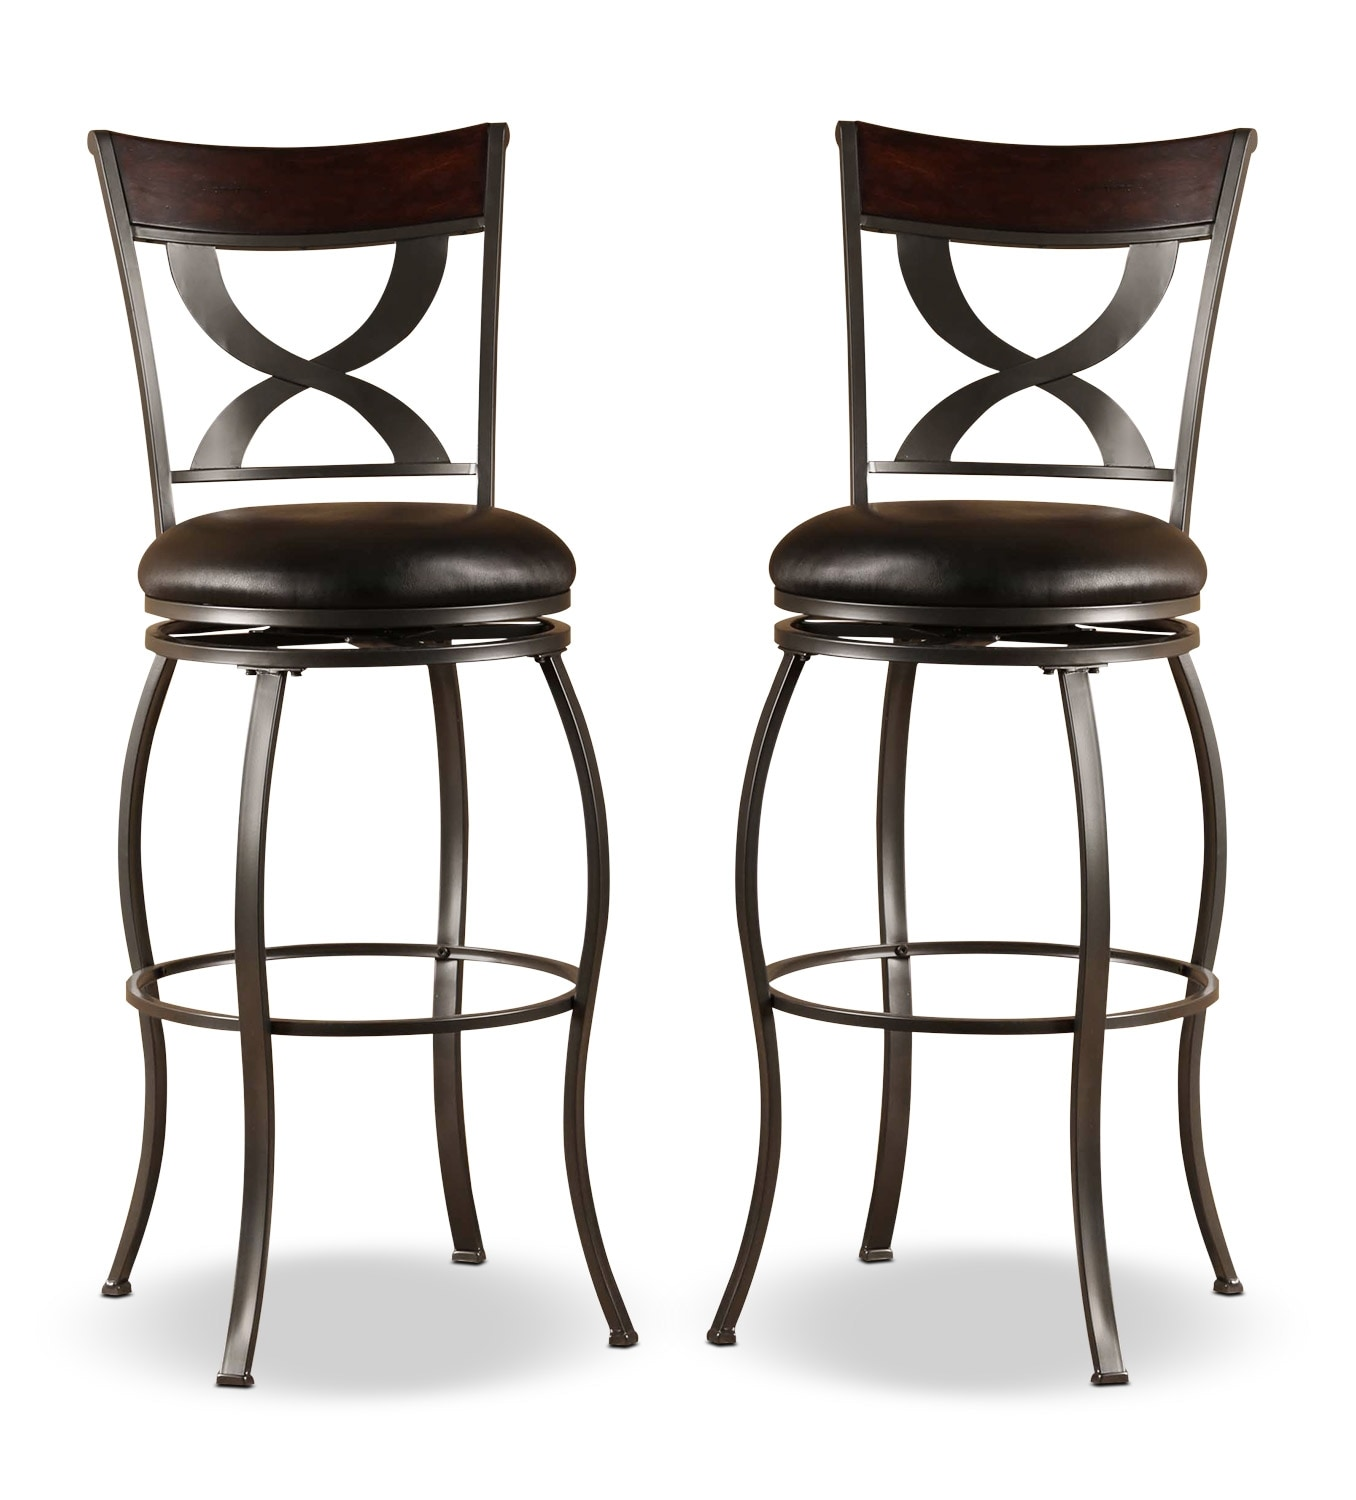 Dining Room Furniture - Stockport Swivel Barstool – Set of 2